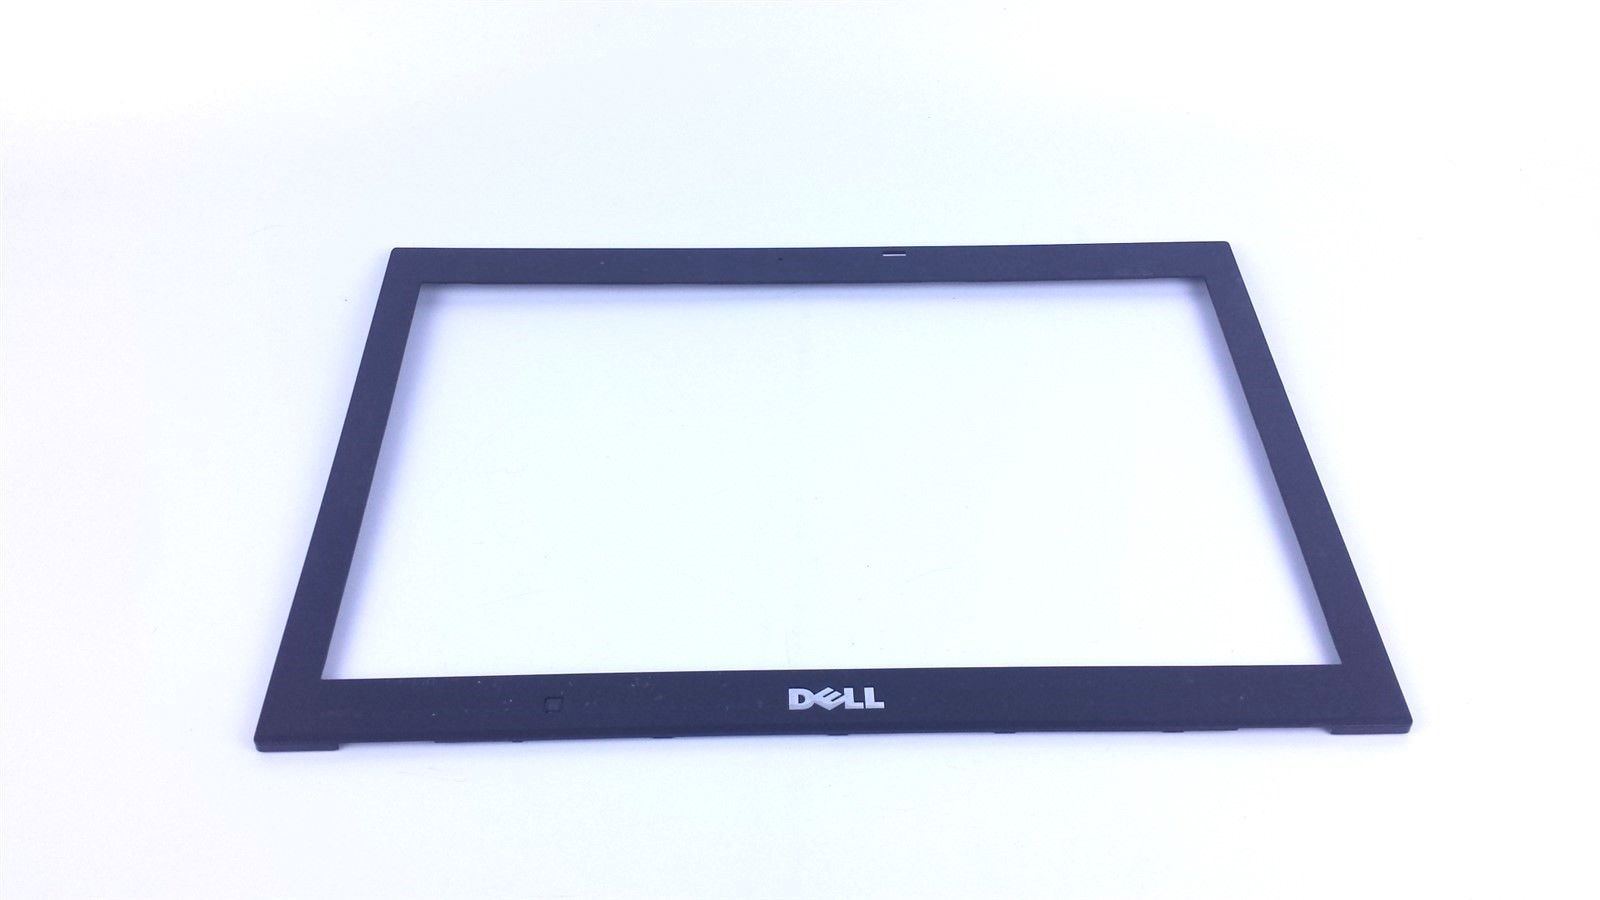 DELL E6400 MIC WINDOWS 8 X64 DRIVER DOWNLOAD